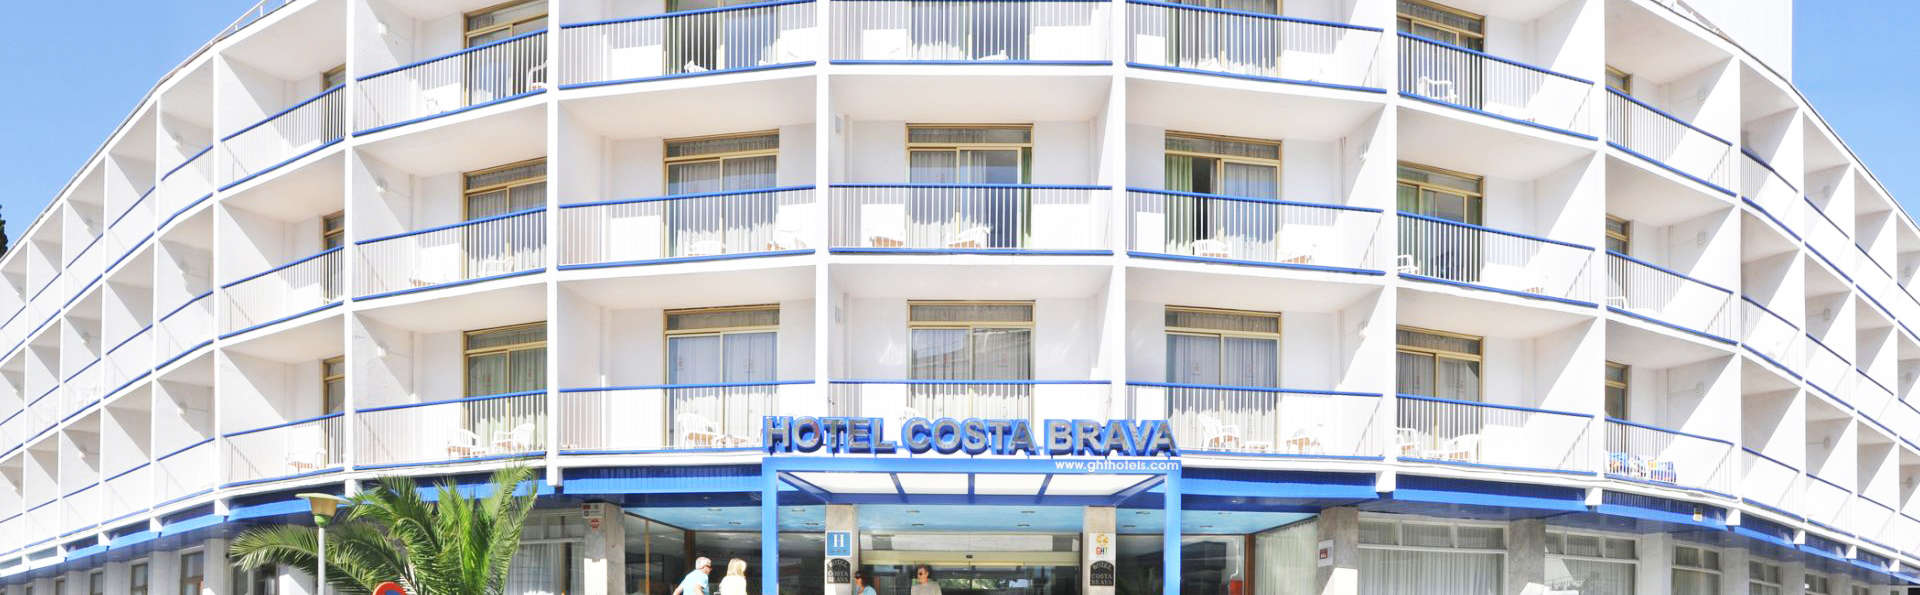 Hotel GHT Costa Brava & Spa - EDIT_front.jpg